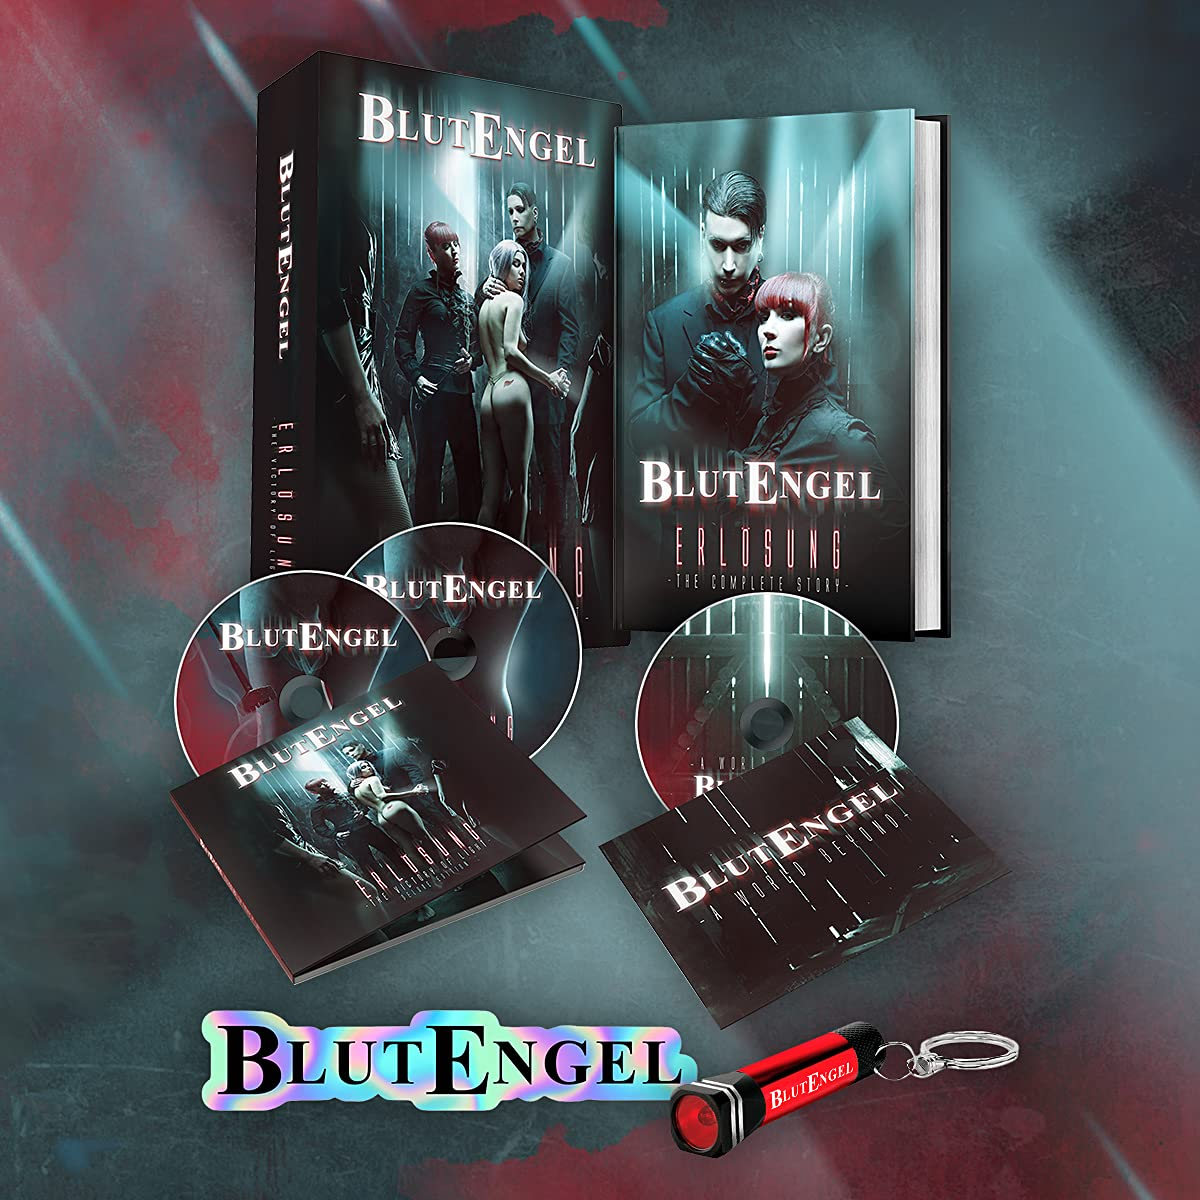 Blutengel - Erlösung - The Victory Of Light (2021) [FLAC] Download